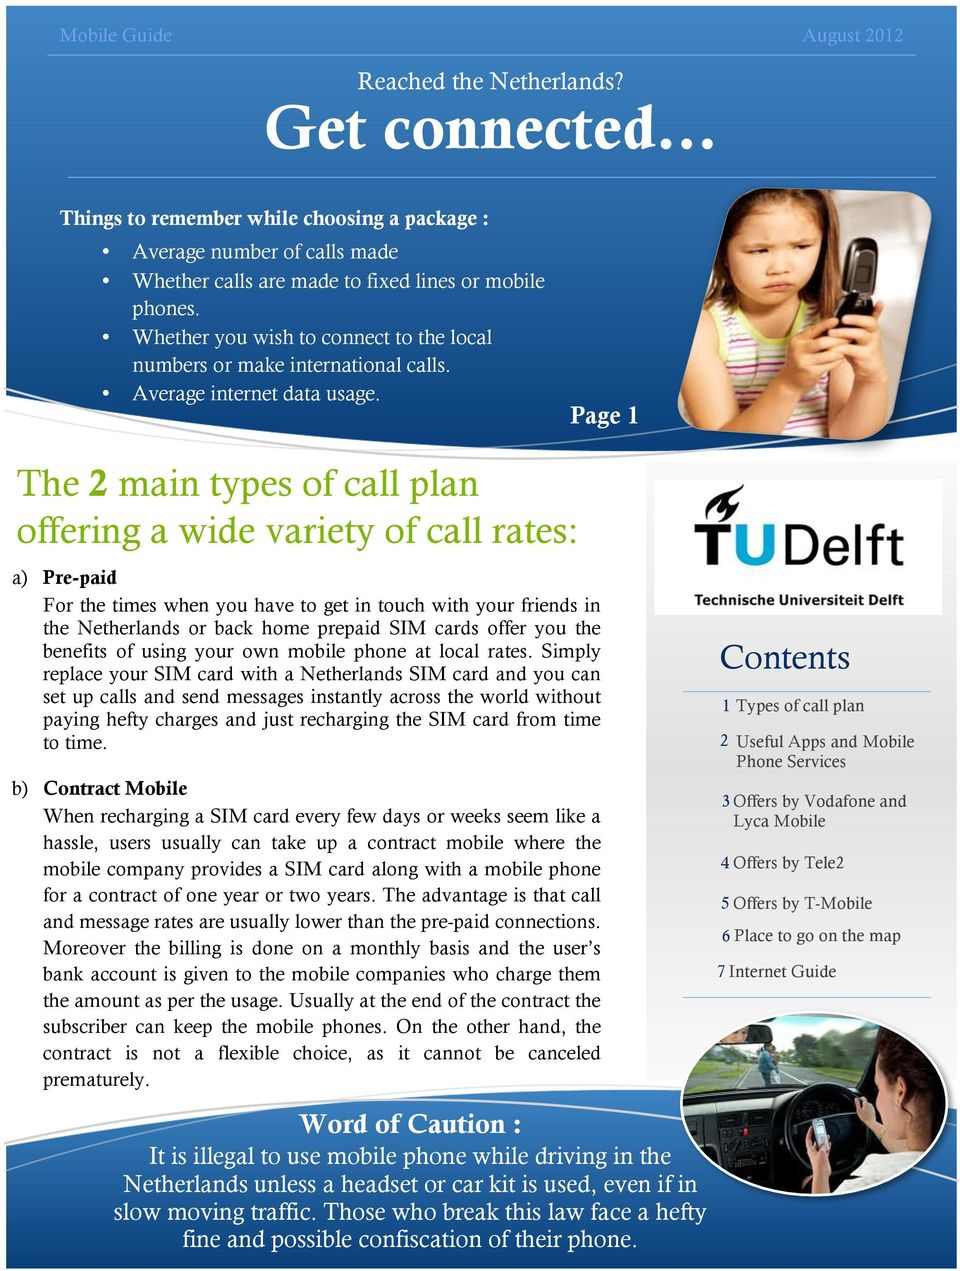 Page 1 The 2 main types of call plan offering a wide variety of call rates: a) Pre-paid For the times when you have to get in touch with your friends in the Netherlands or back home prepaid SIM cards